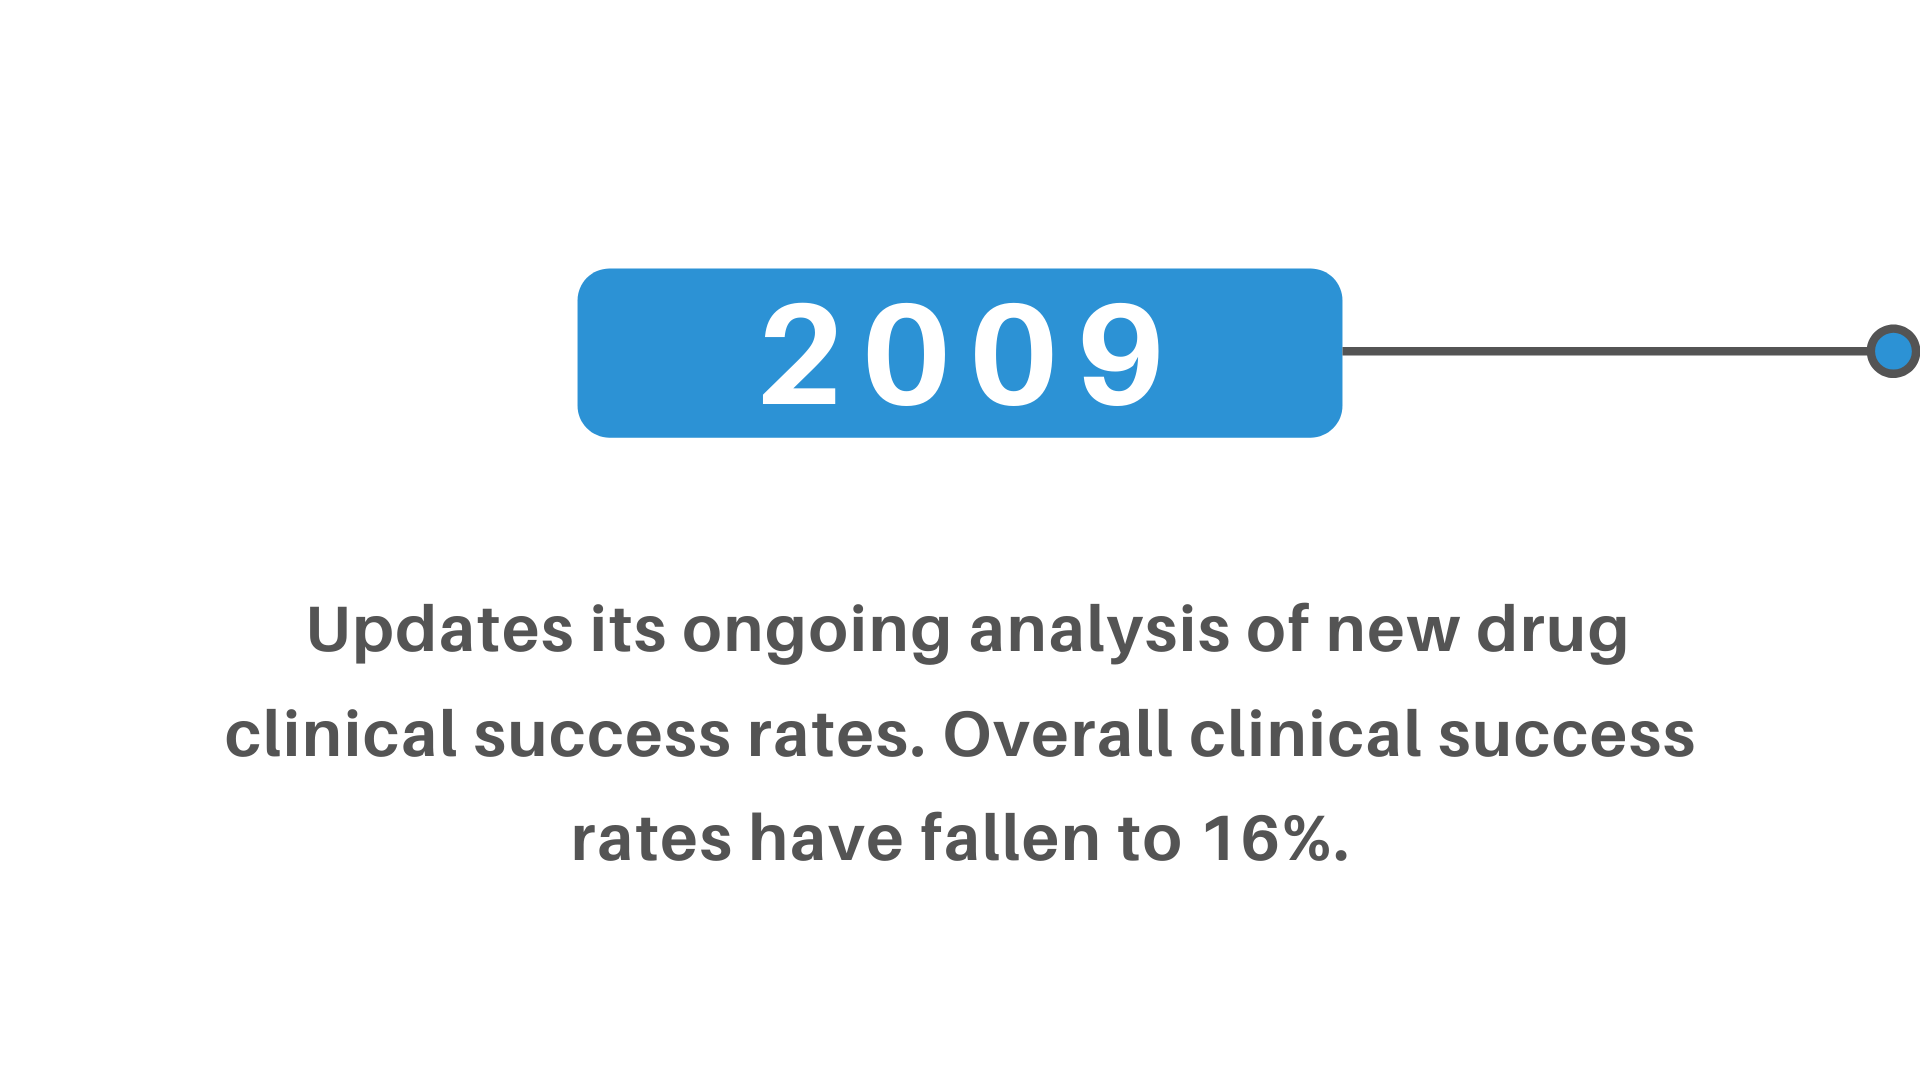 new drug clinical success rates clinical success rates 16%